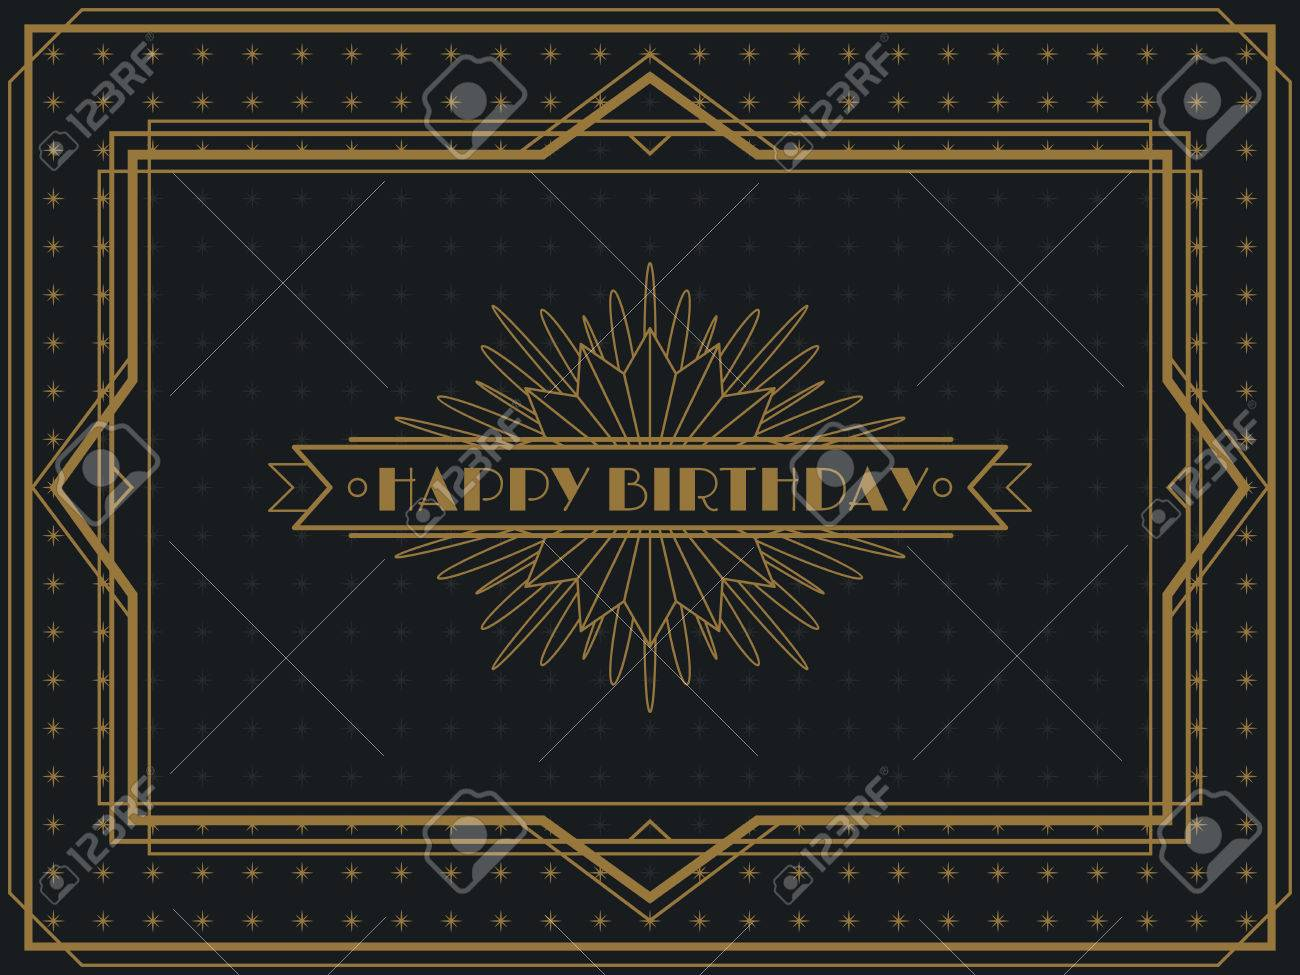 Vector vintage art deco happy birthday card frame design template